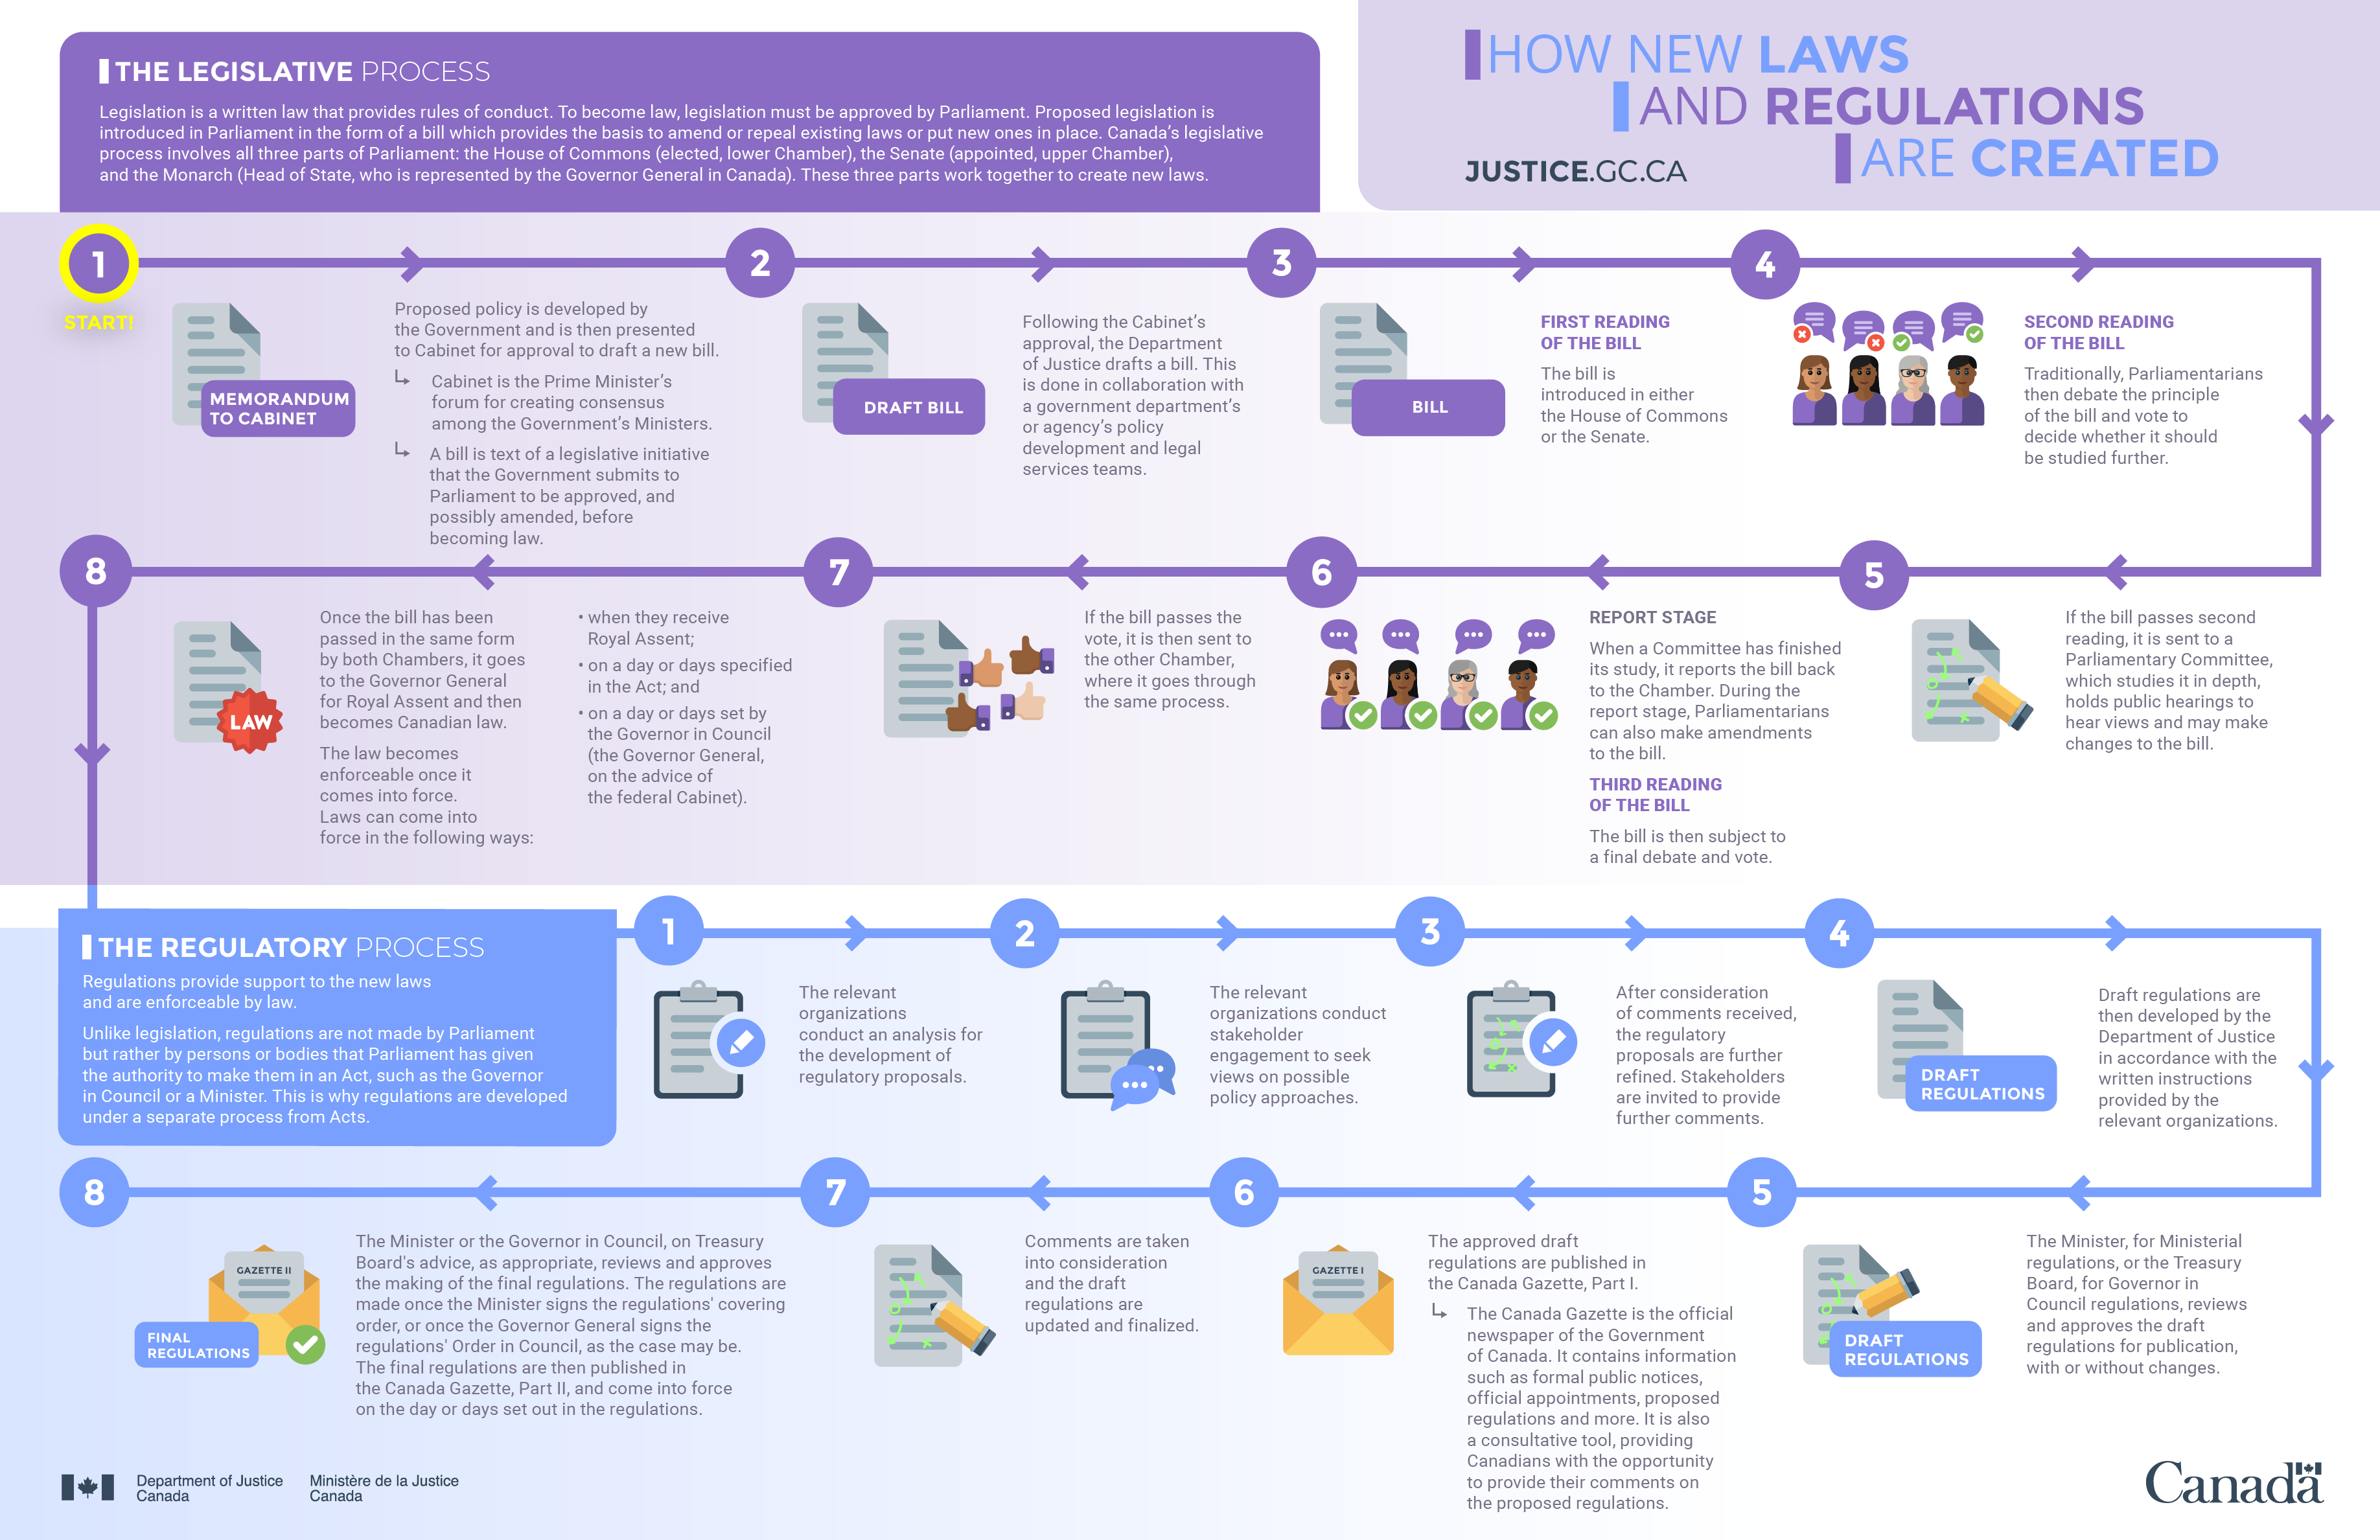 Image of Infographic: How new laws and regulations are created